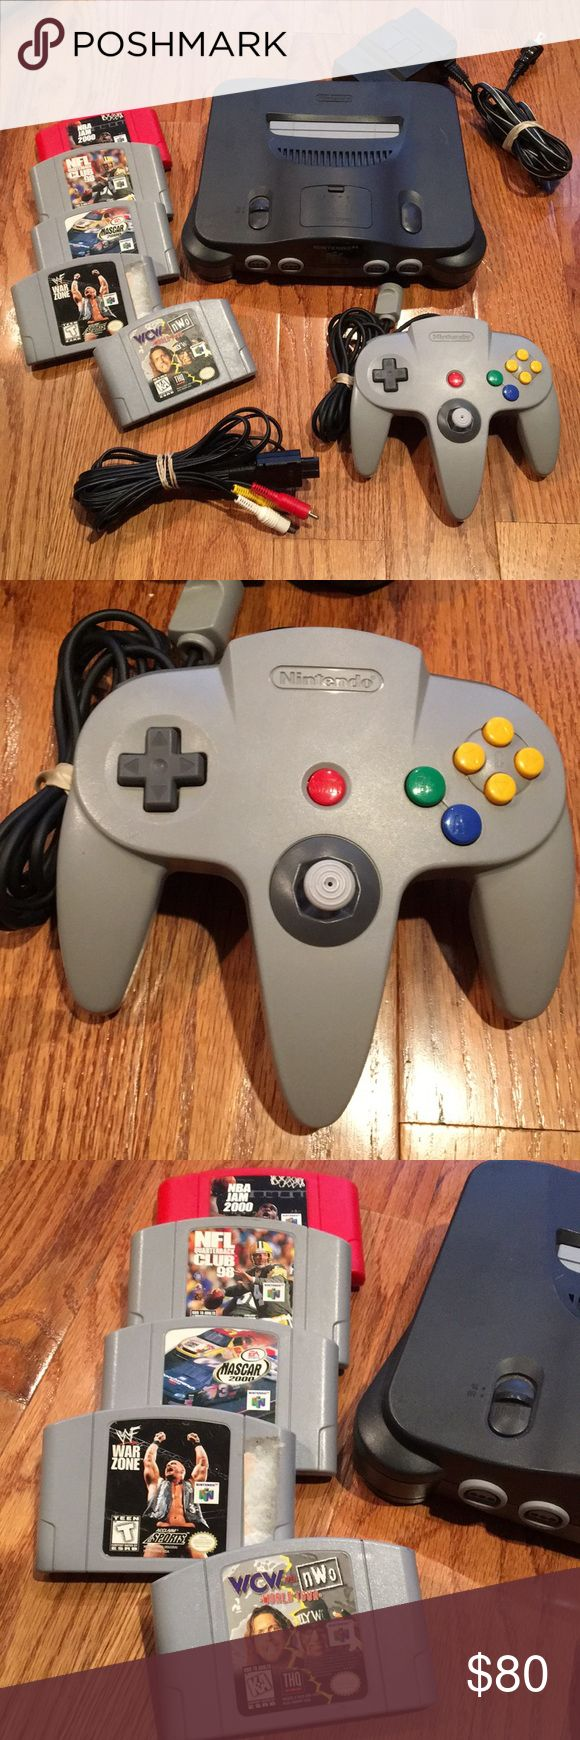 N64 Nintendo system console bundle & games You get all in pic.  The joystick on controller is tight and like new condition.  Everything works and is great condition Nintendo Accessories